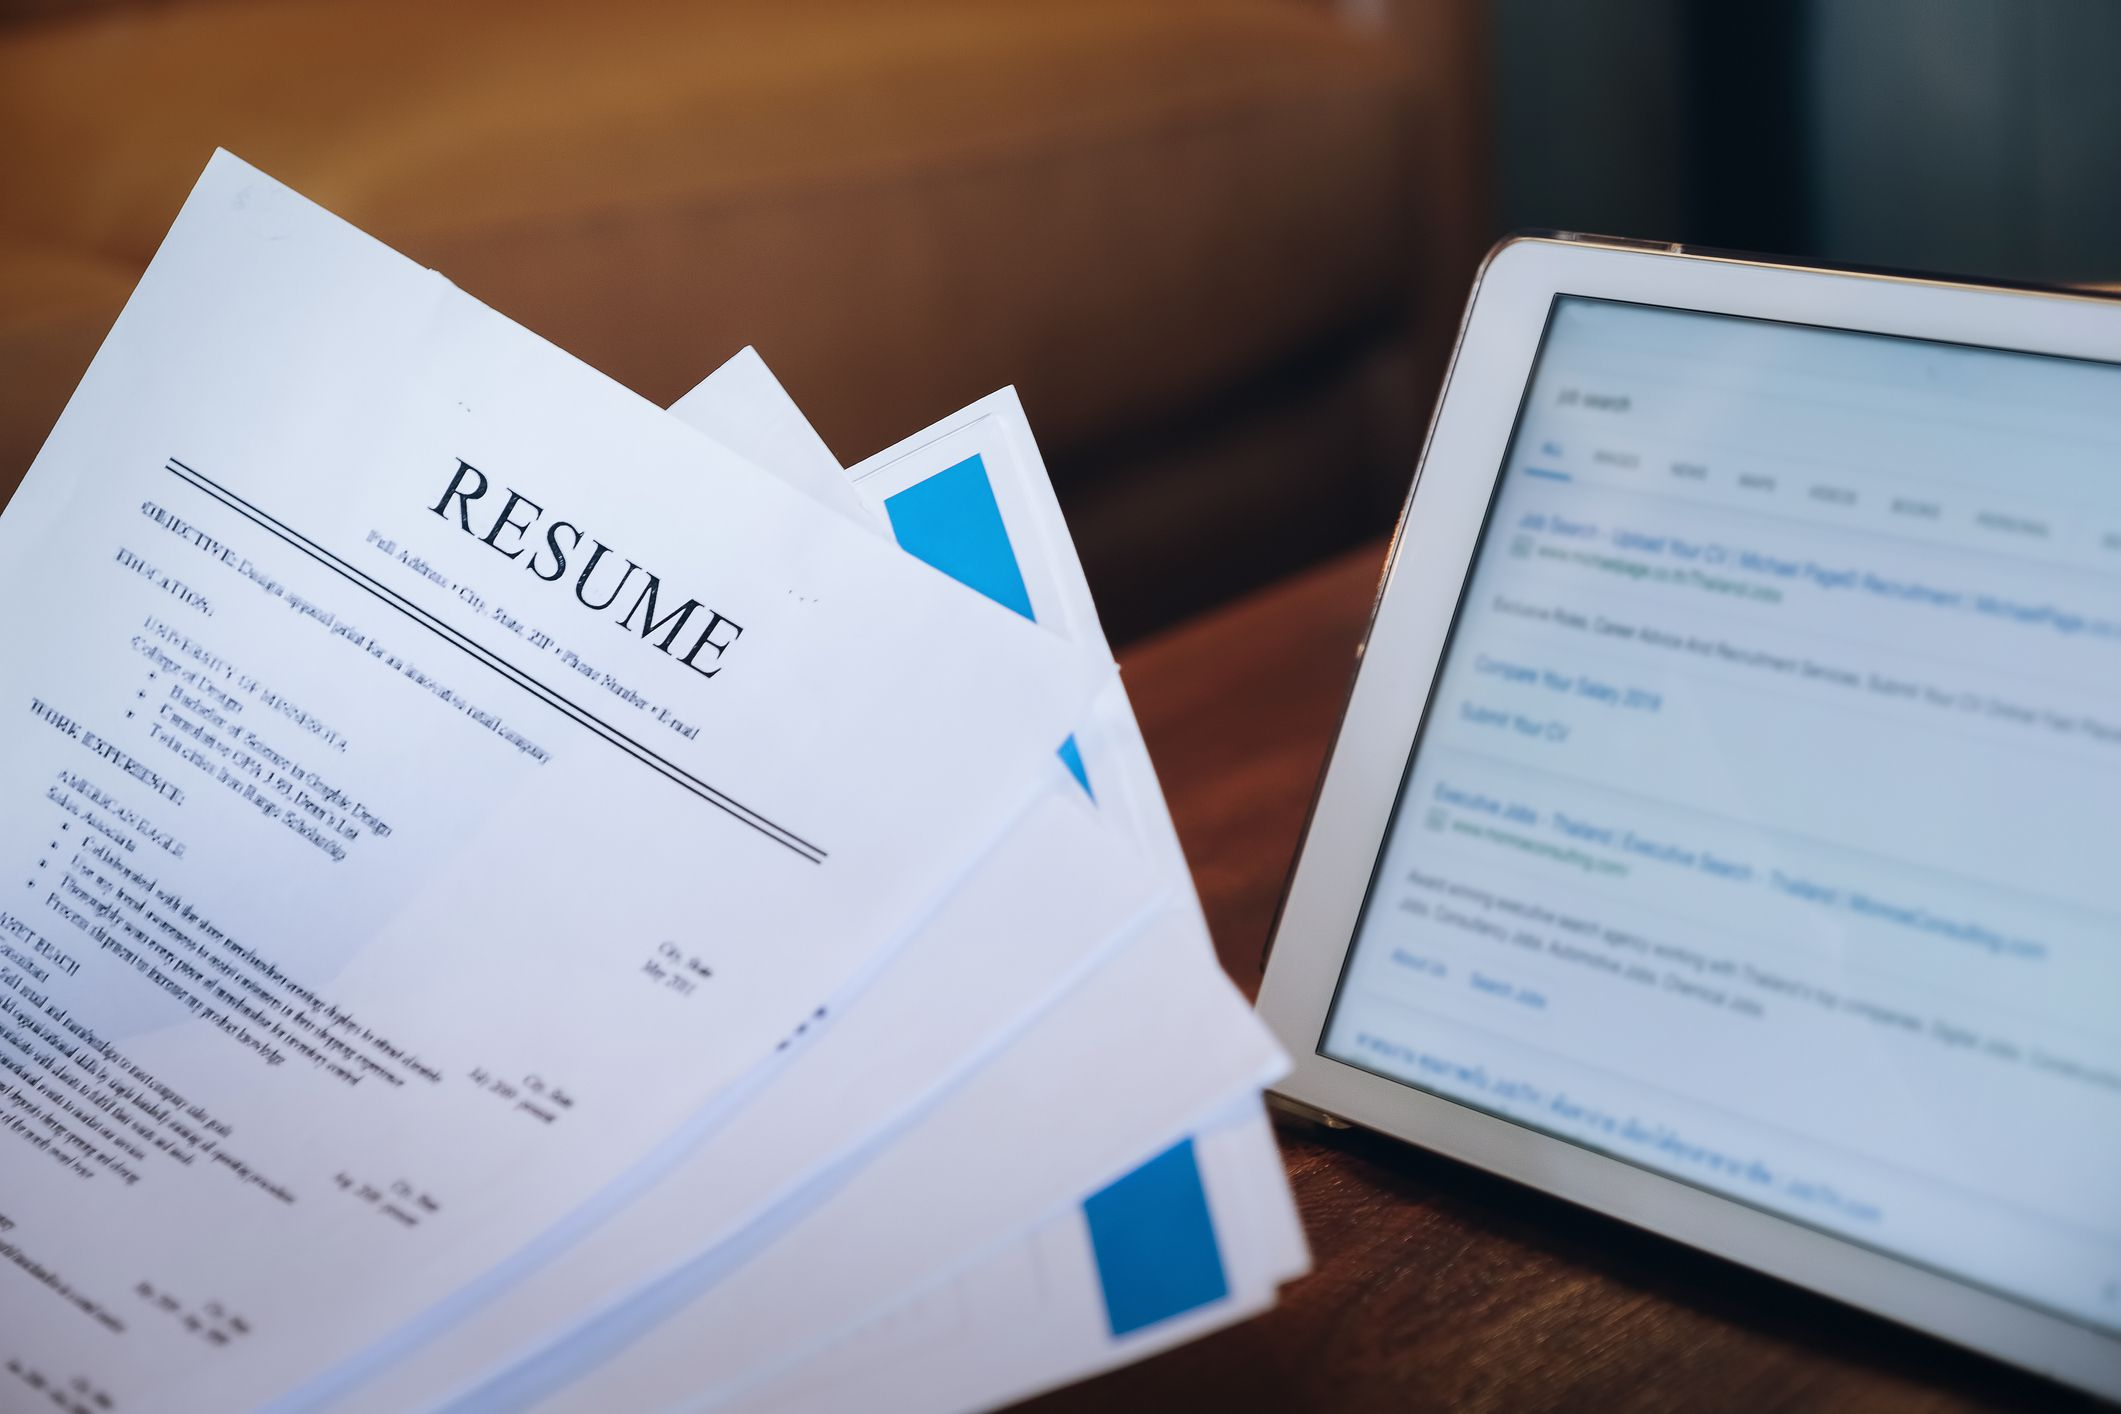 How To Select The Best File Format For Your Resume